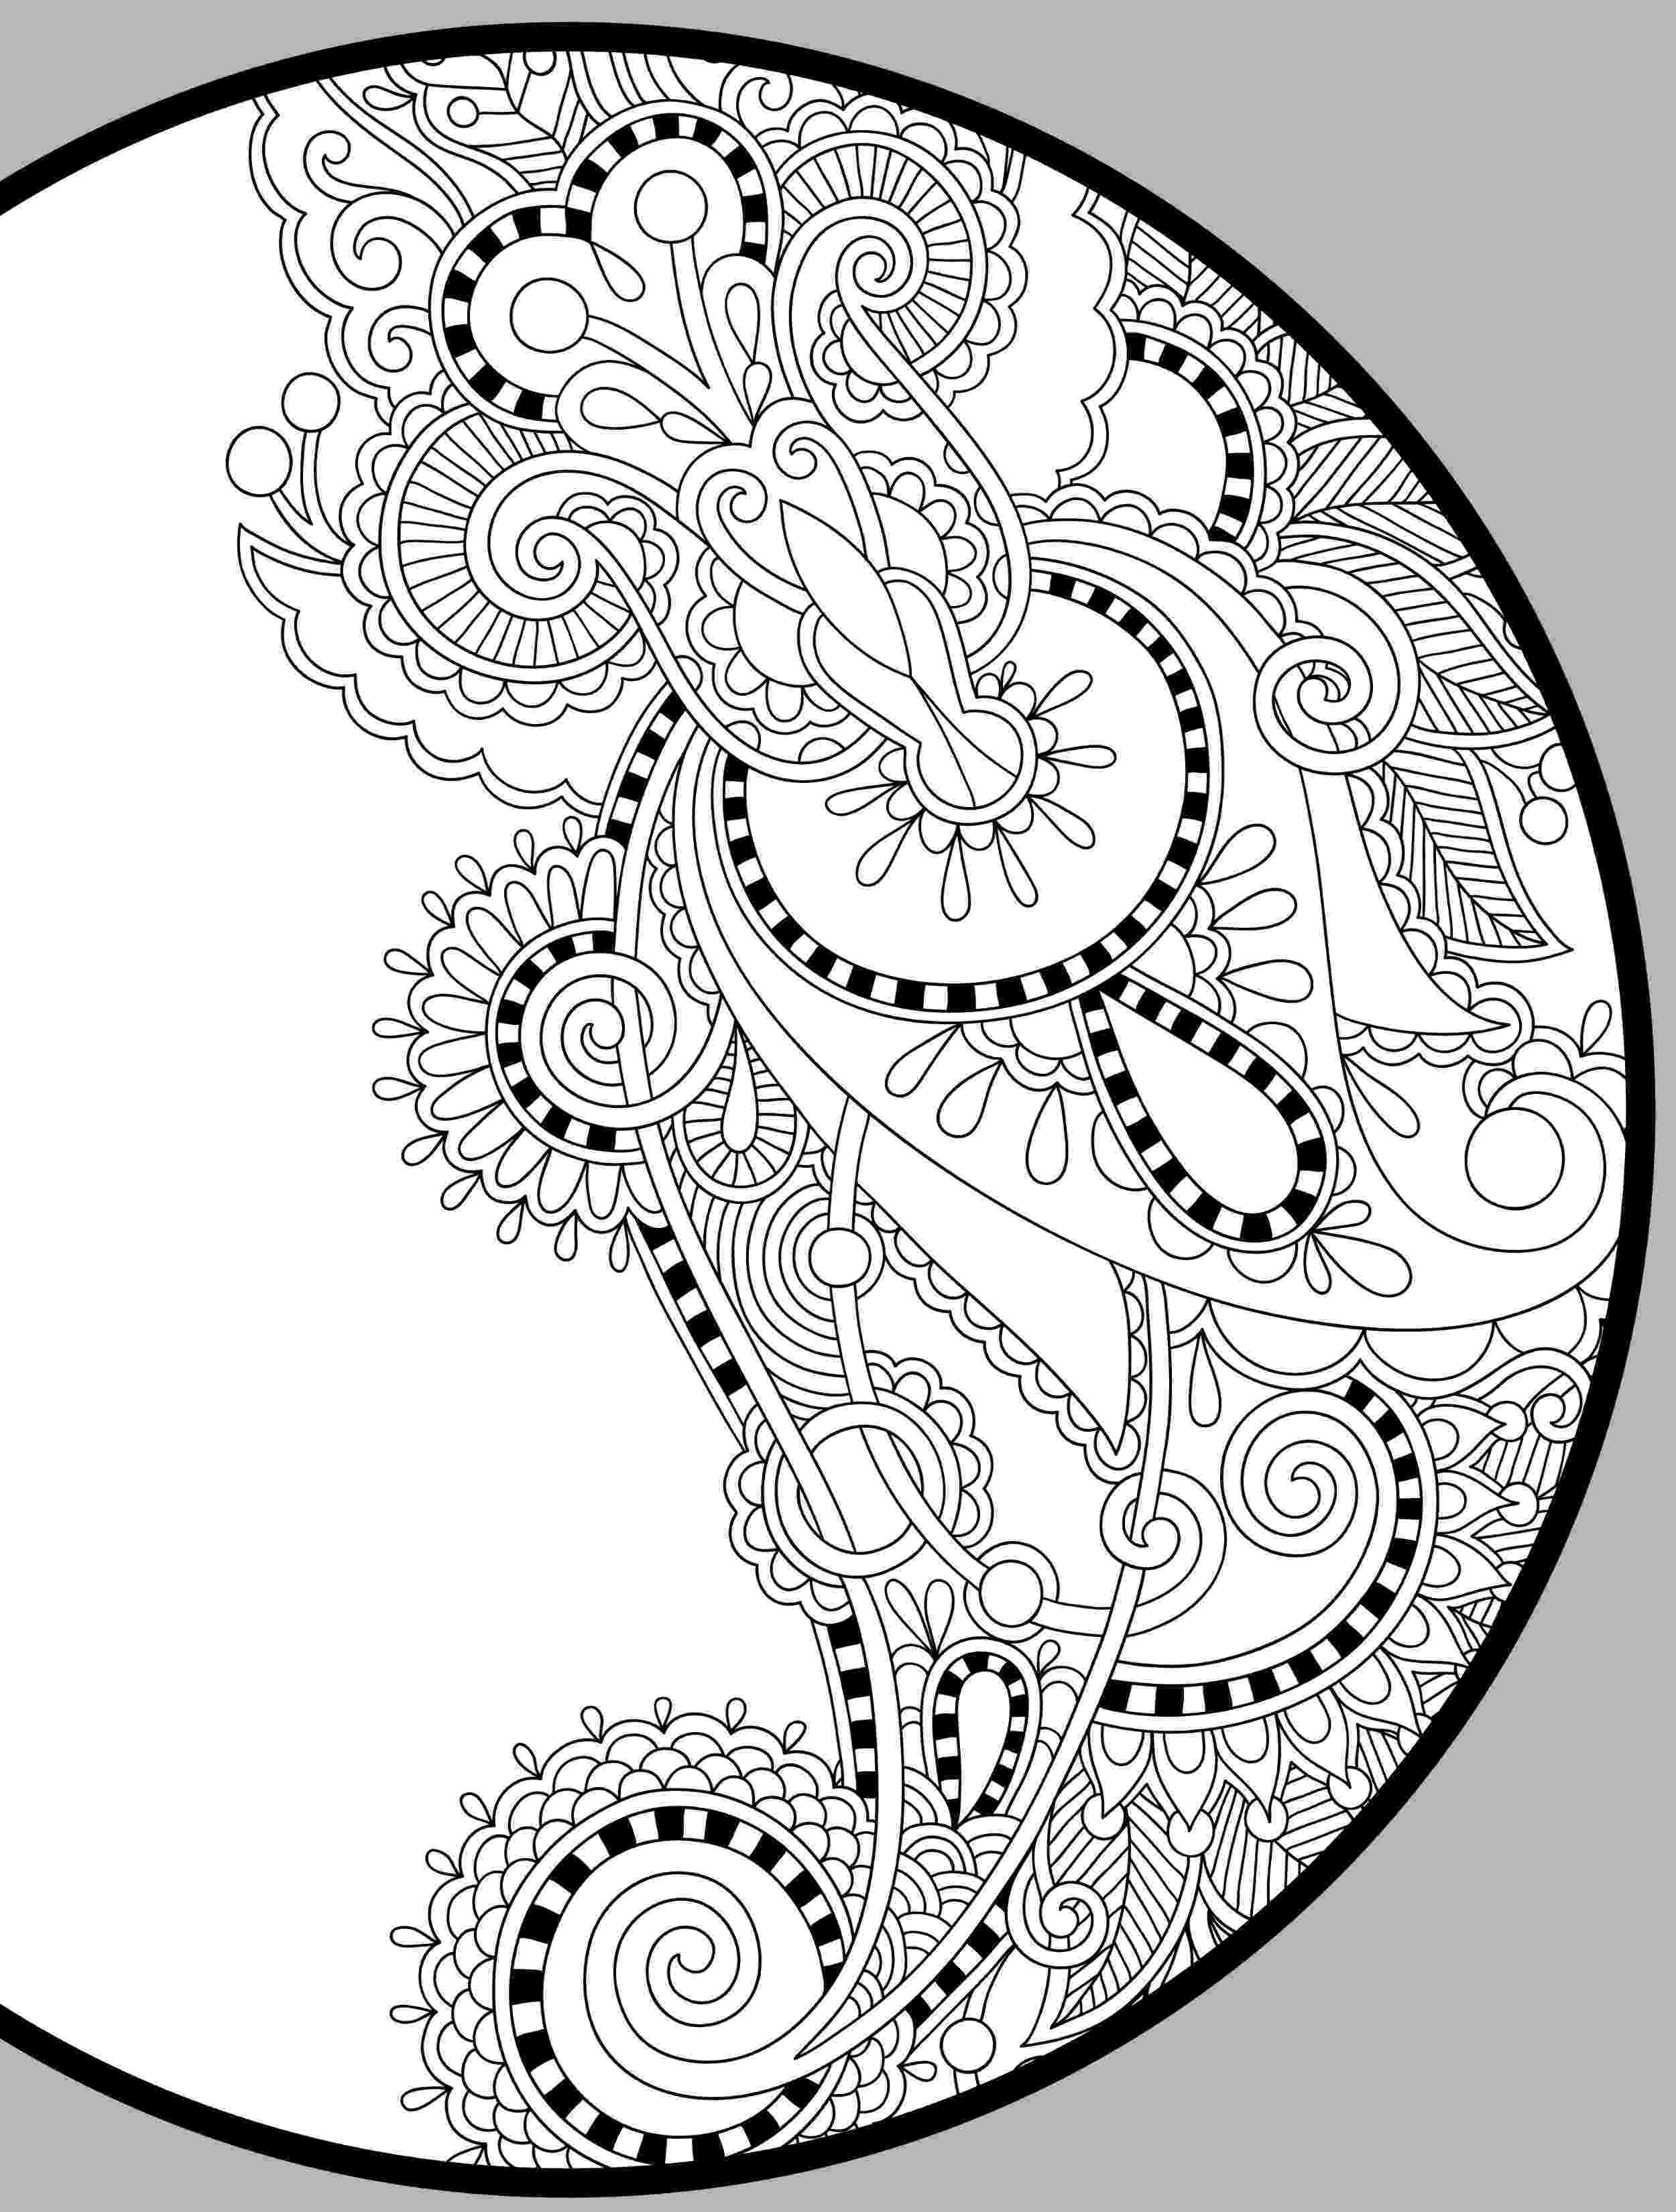 coloring book for adults online adult coloring book art therapy volume 3 printable for coloring adults book online